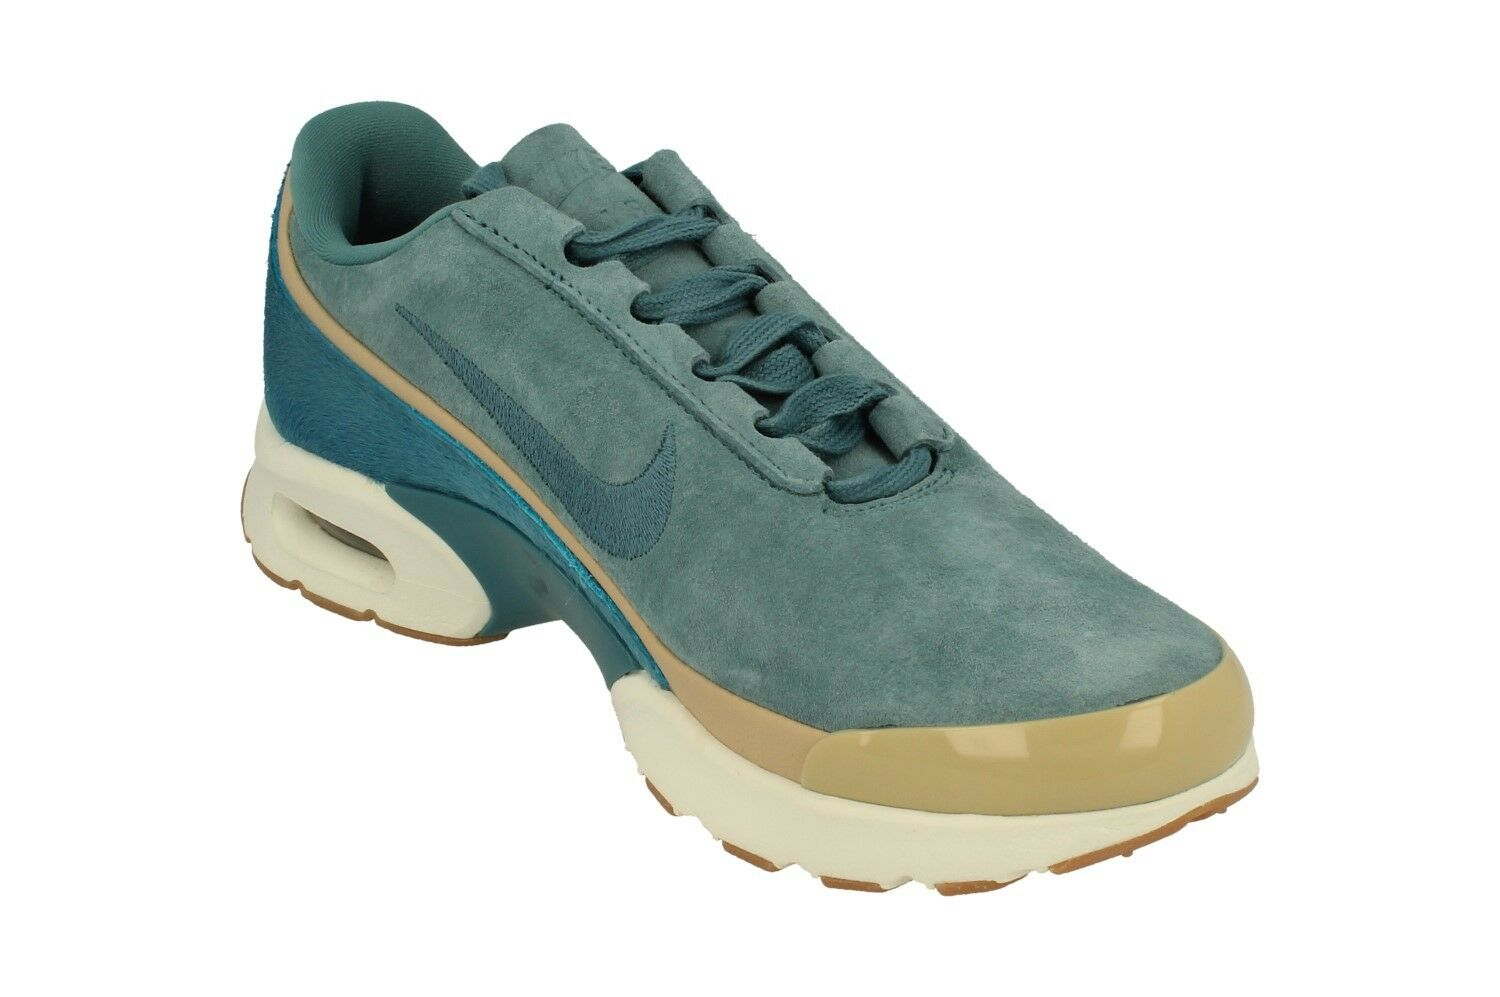 nike air max jewell lx en en lx femmes formateurs 896196 chaussures chaussures 002 b4ca75